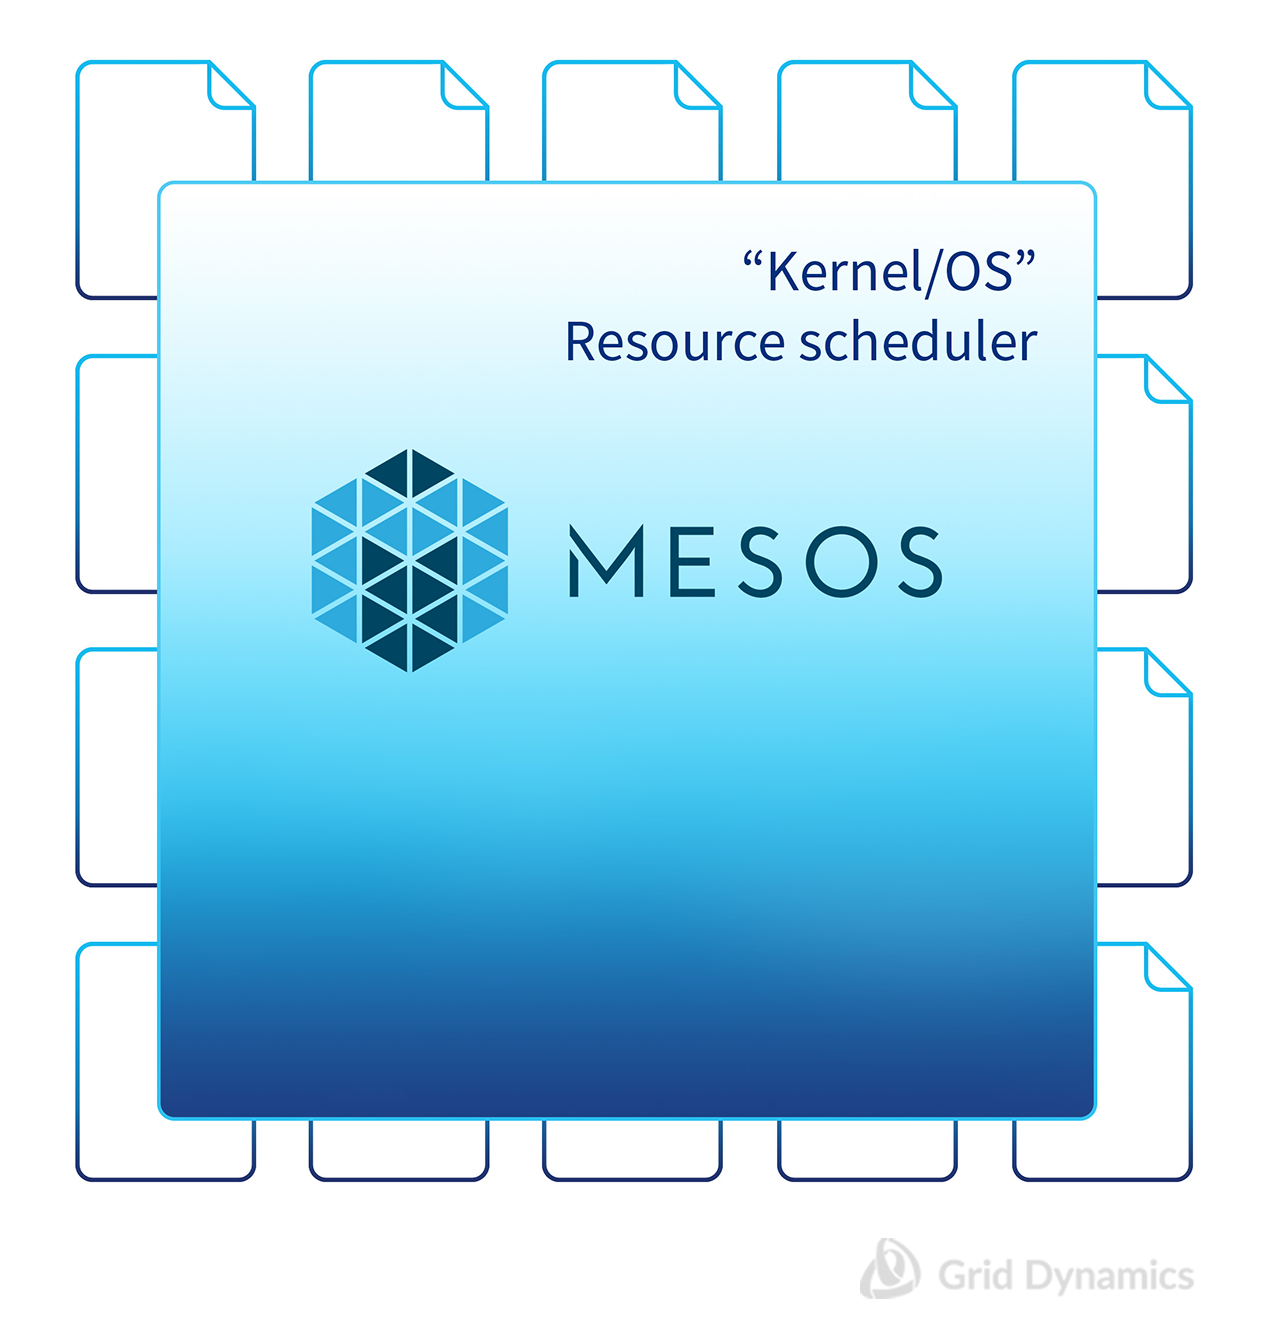 Mesos - the resource manager for cluster of VMs